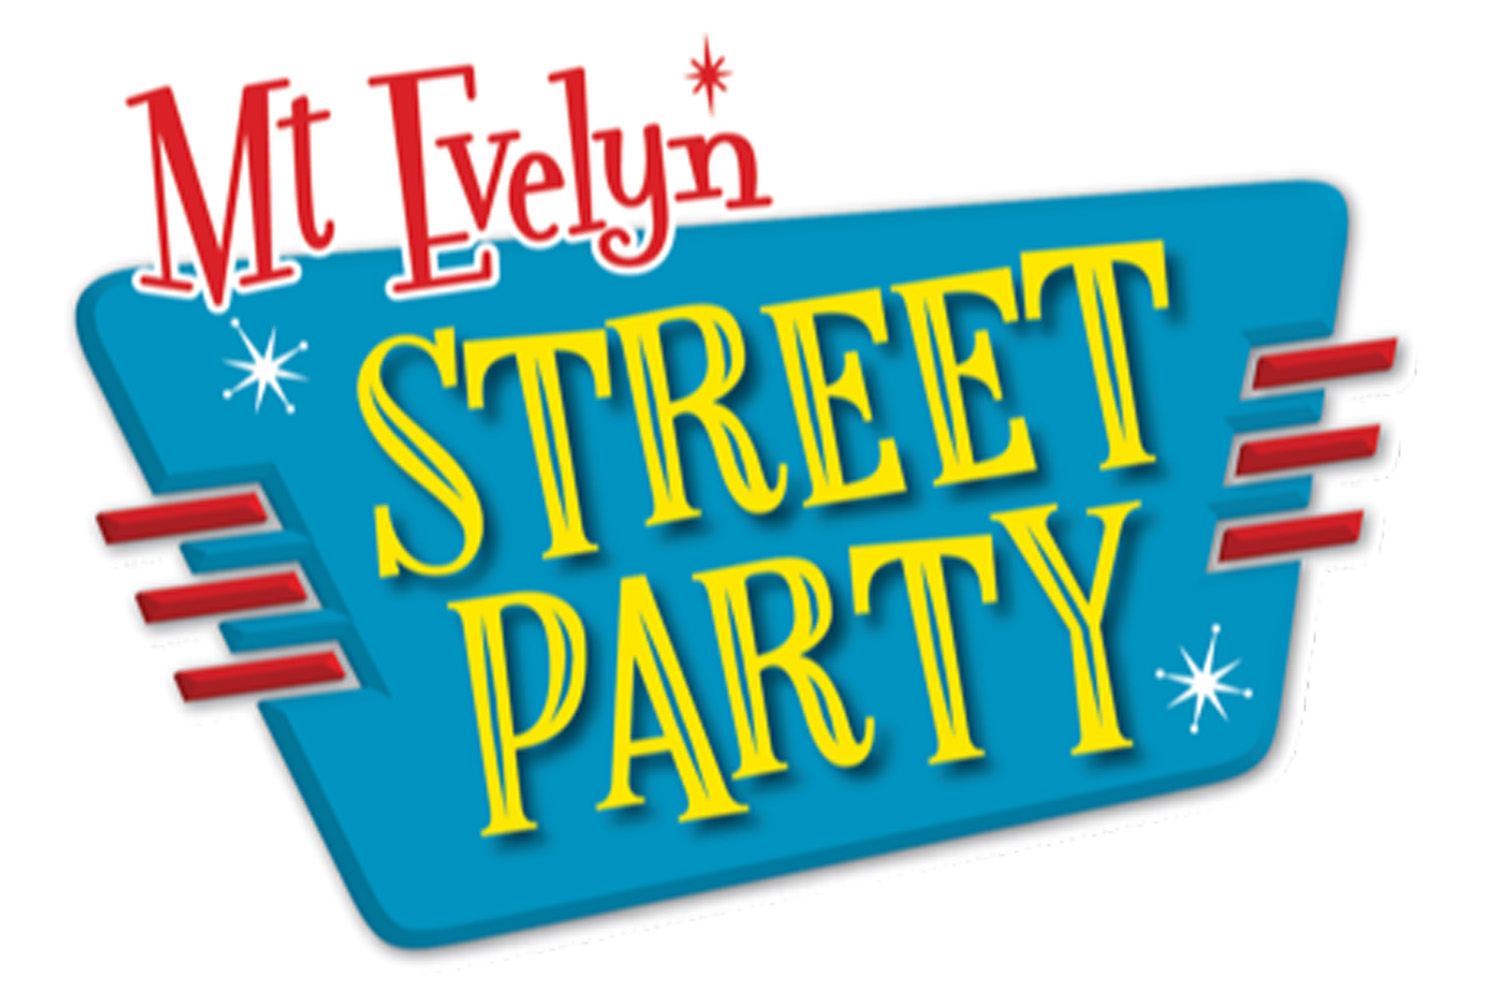 Mt Evelyn Street Party